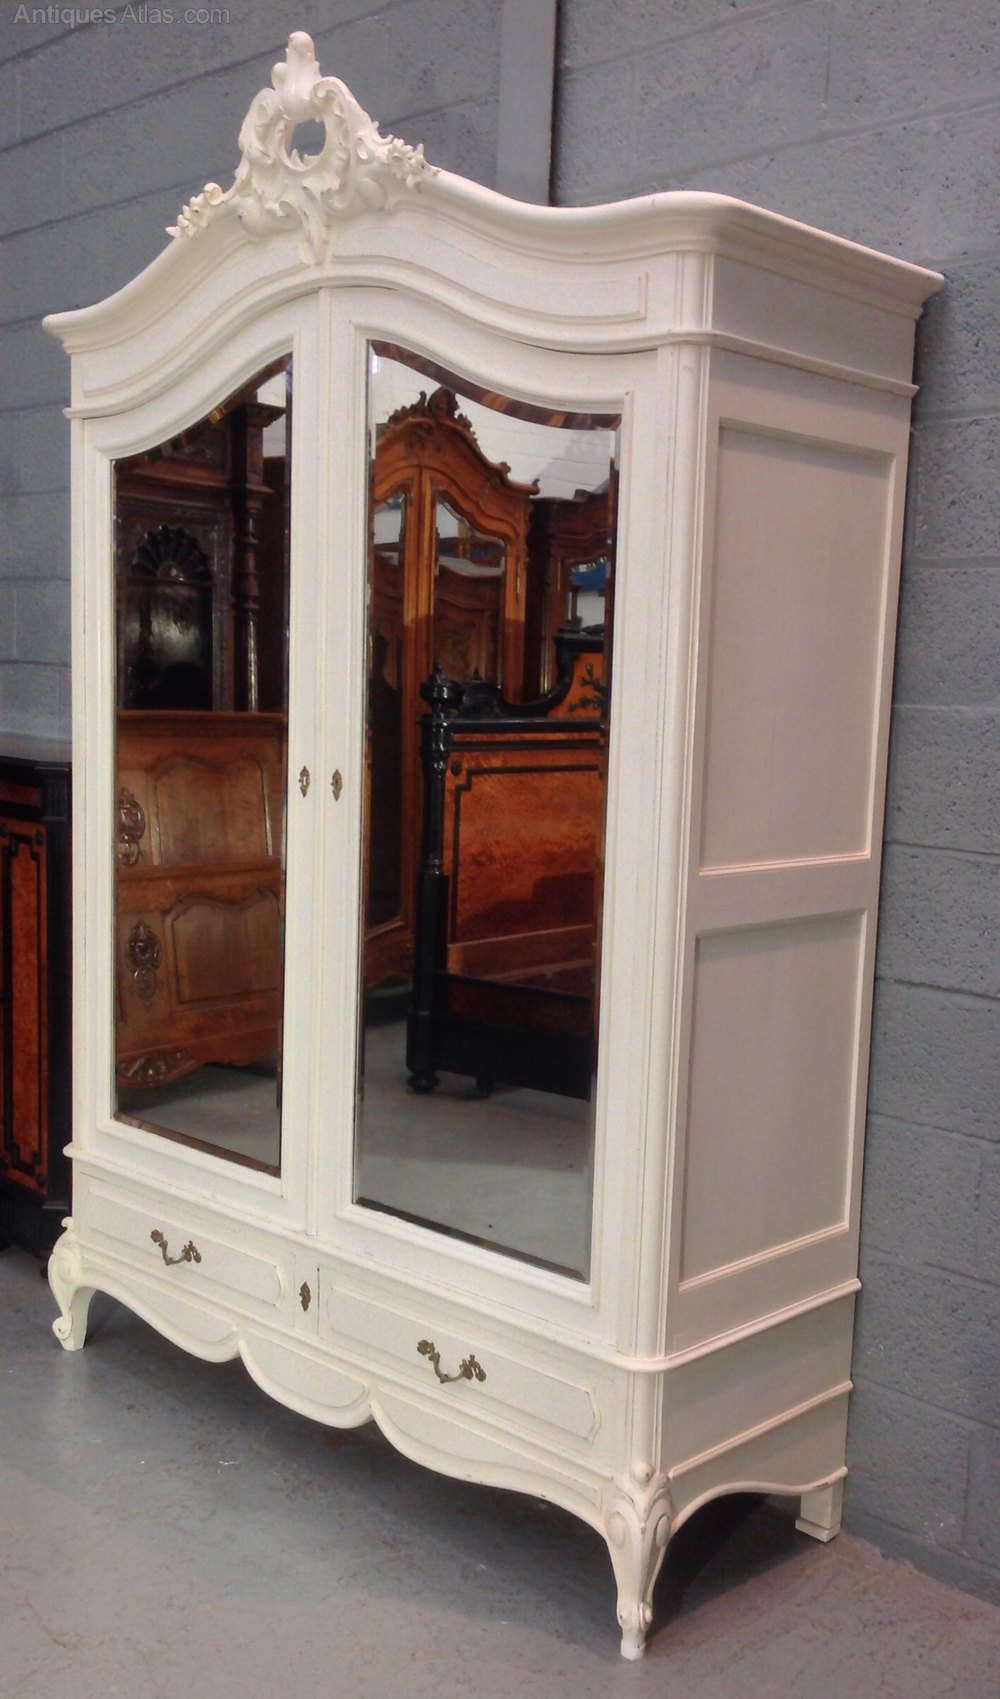 Painted French Armoire - Antiques Atlas